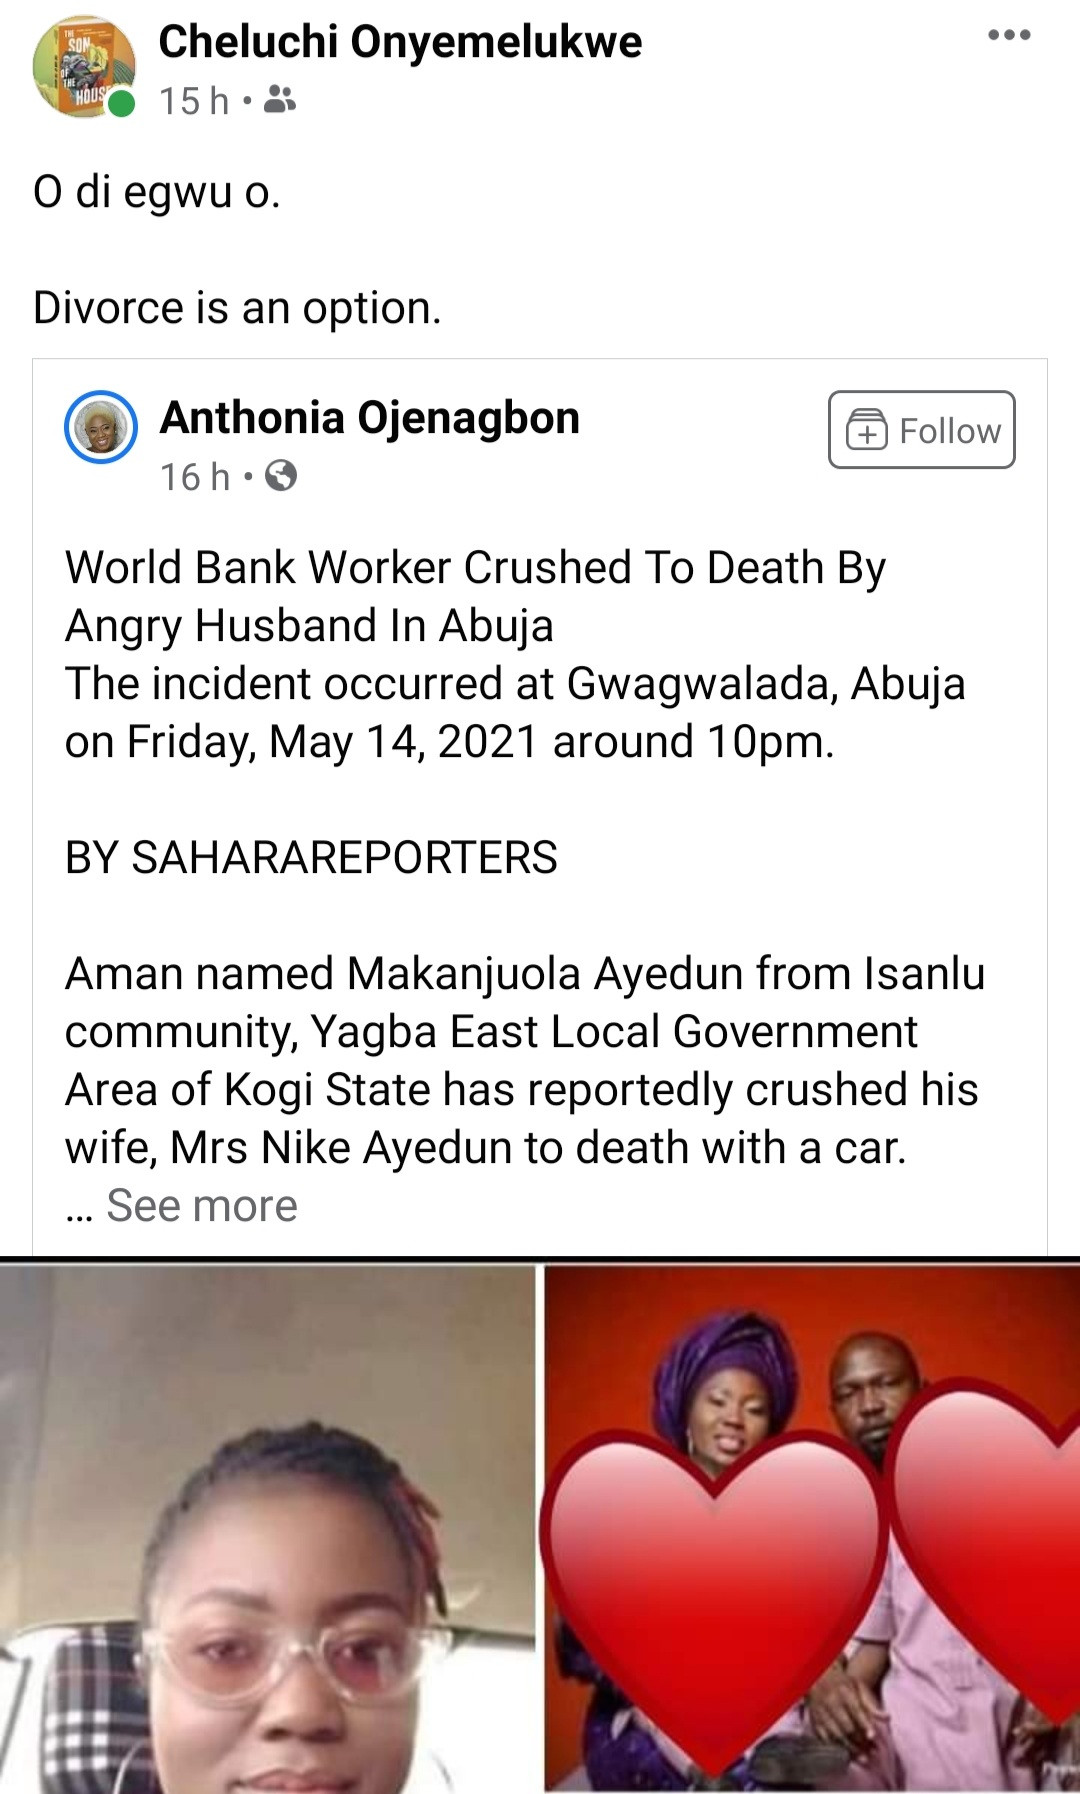 Friends mourn World Bank staff allegedly crushed to death with a car by her husband